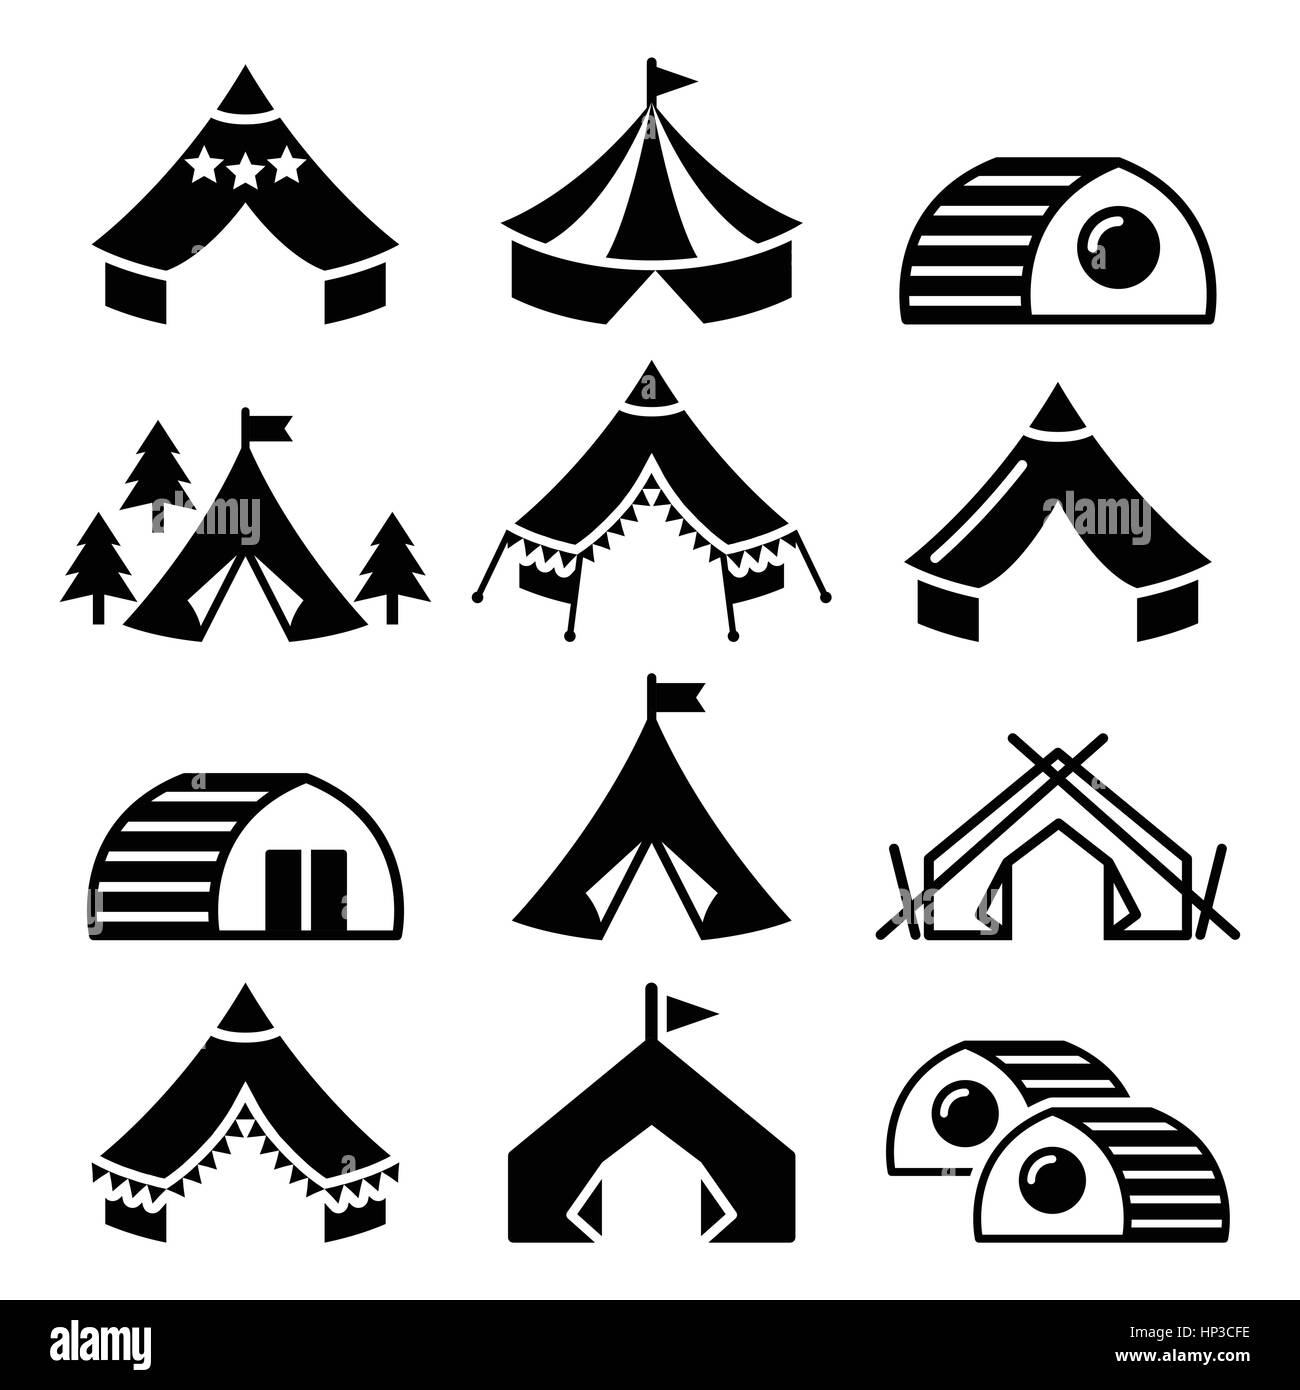 Glamping, luxurious camping tents and bambu houses icons set. Vector icons of glamorous camping - glamping isolated - Stock Image